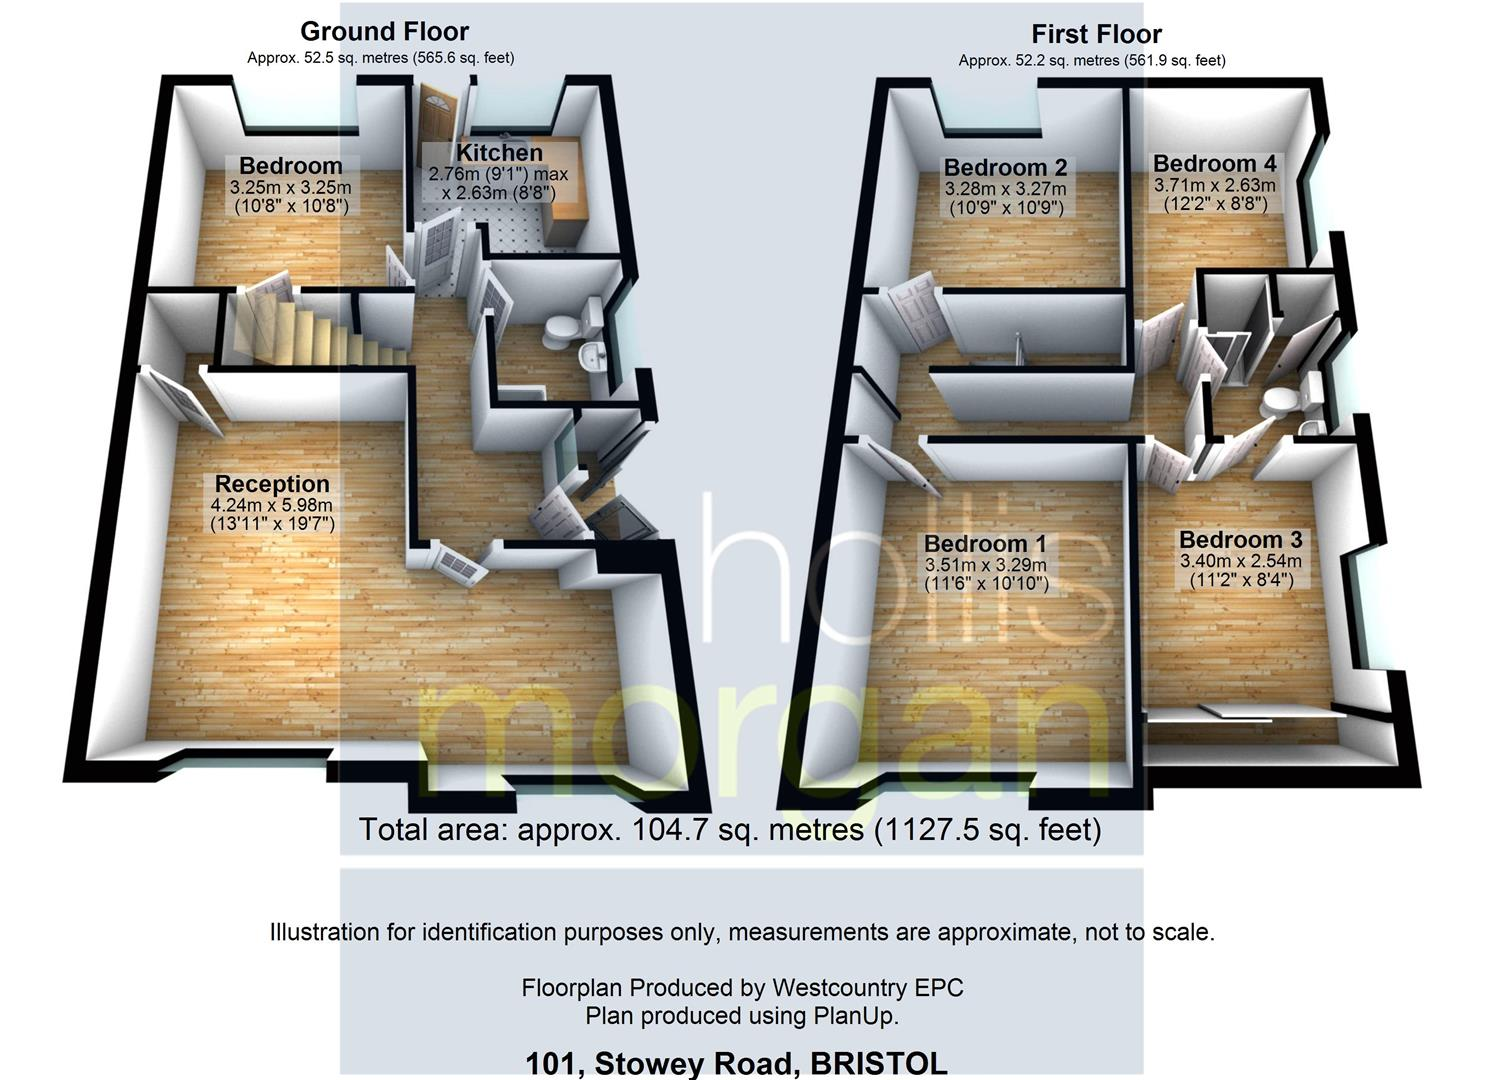 Floorplans For 4 BED FOR UPDATING - YATTON